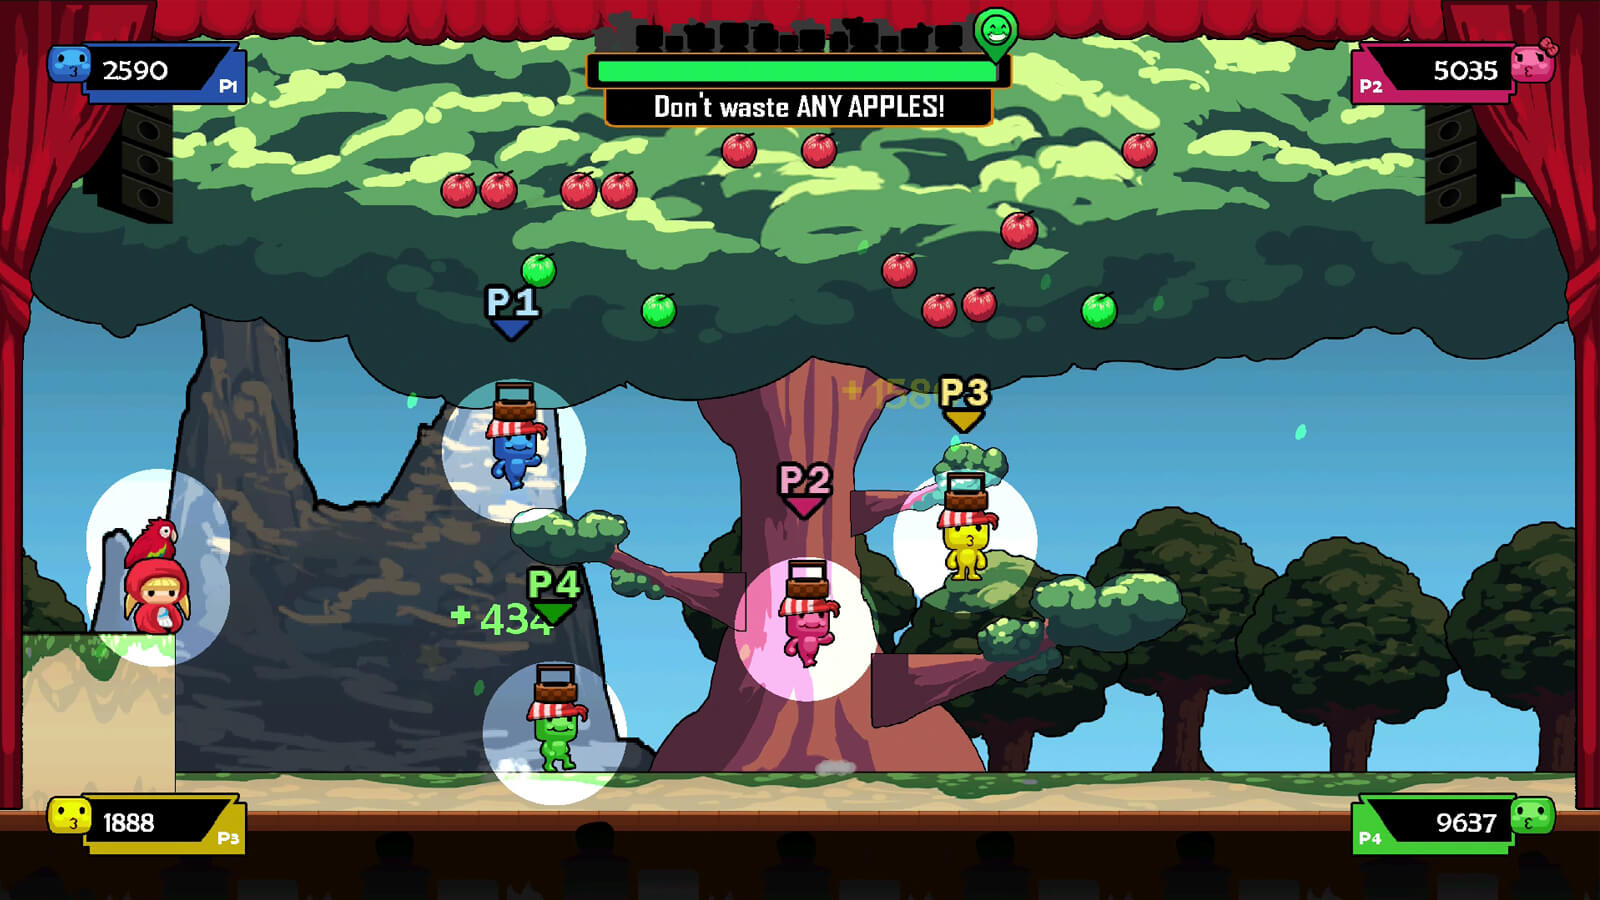 Four players of various colors jump around the stage under a large tree full of red and green apples